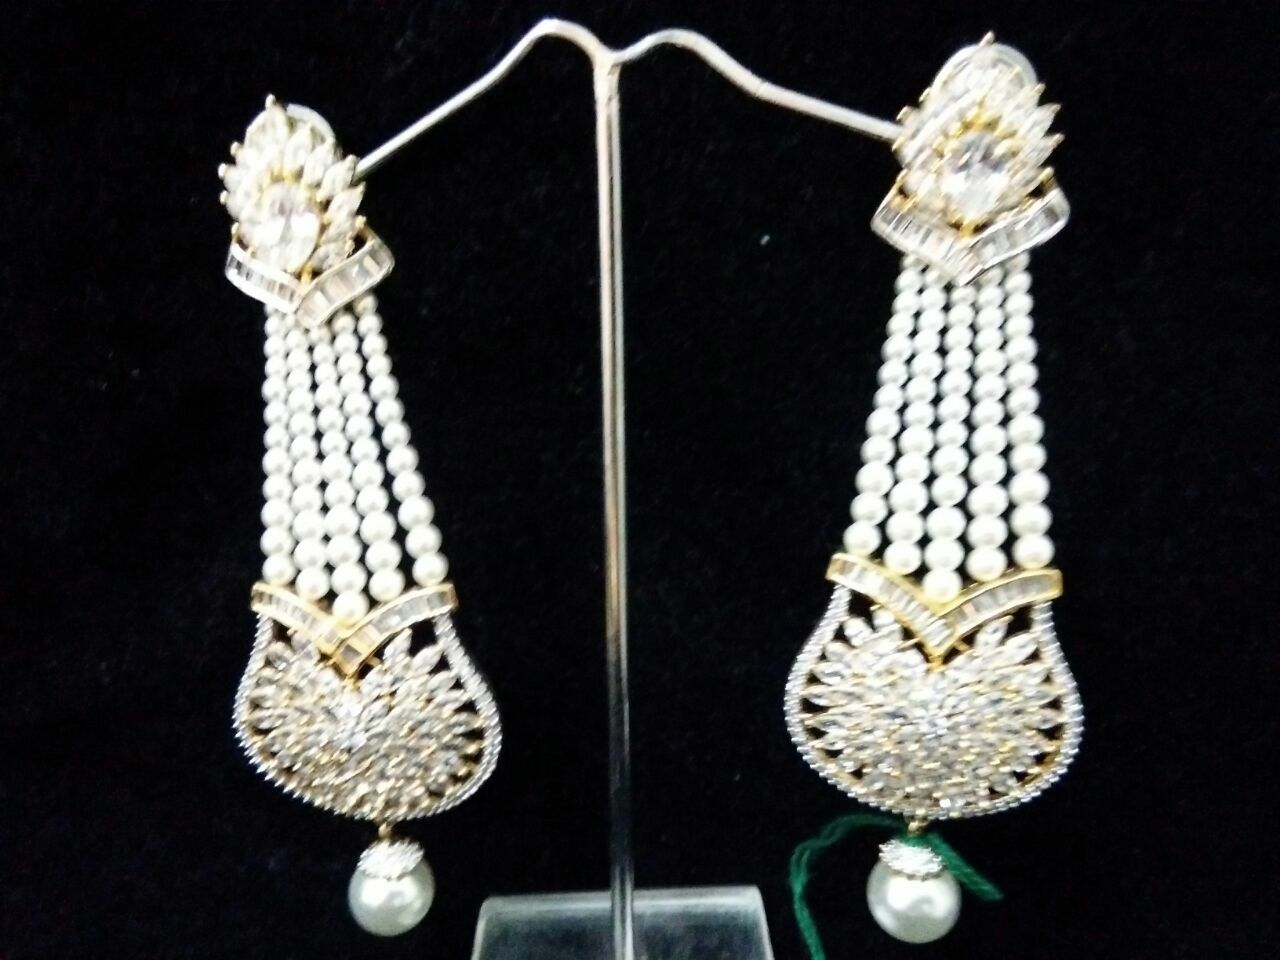 Traditional Danglers earring for women fashion jewelry color white